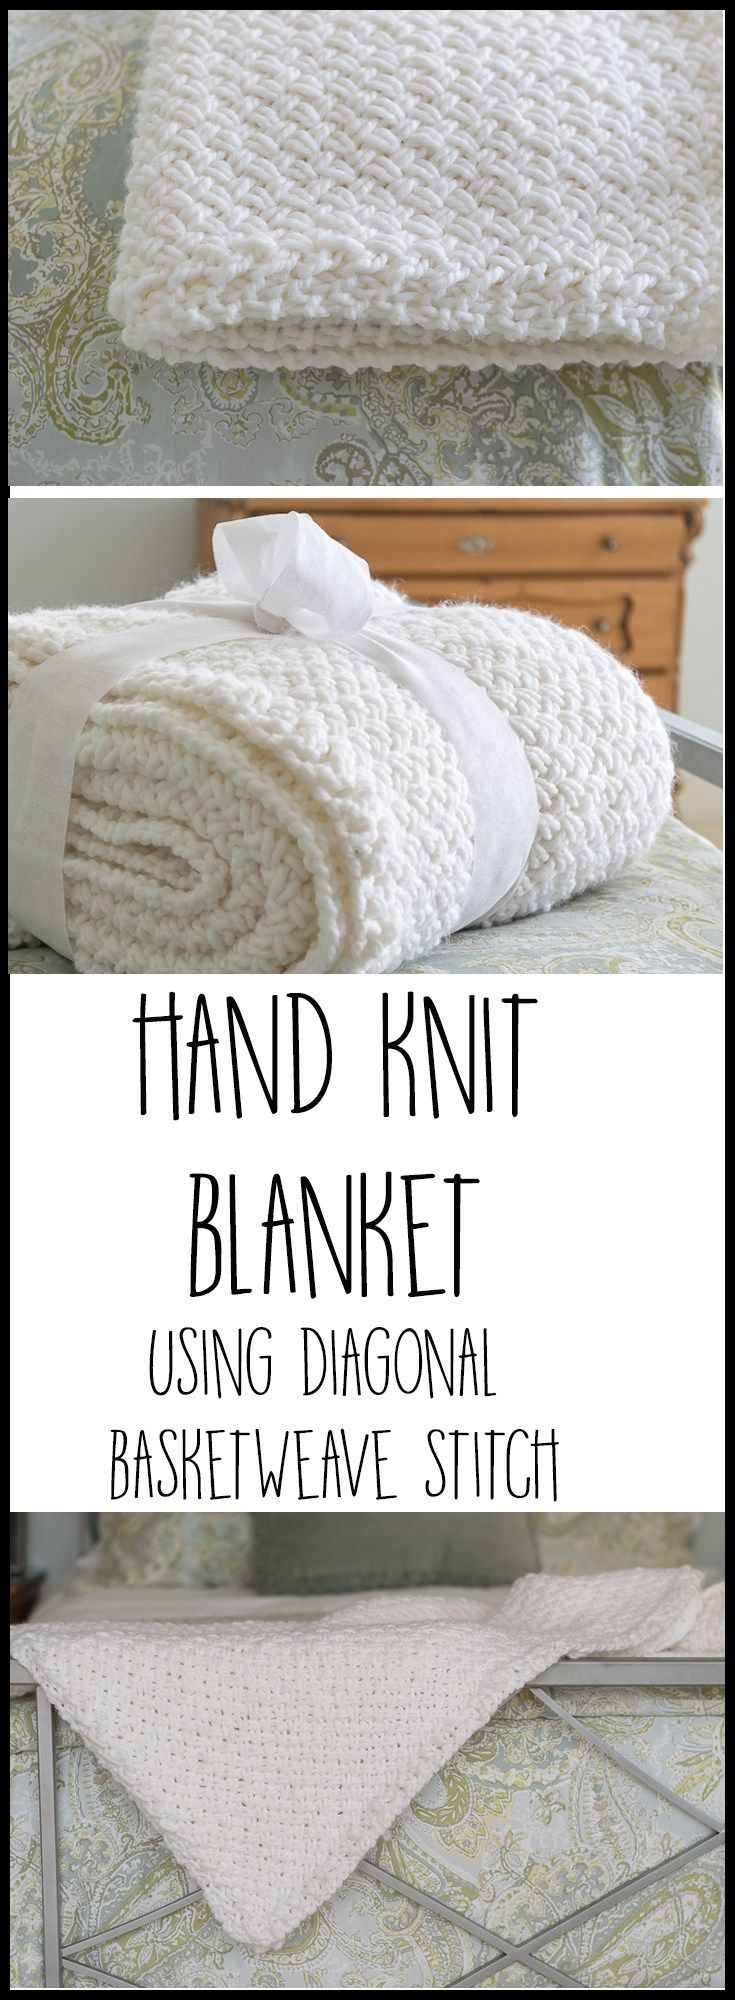 Knit Blanket with Diagonal Basket Weave Stitch | DIY tutorial ...